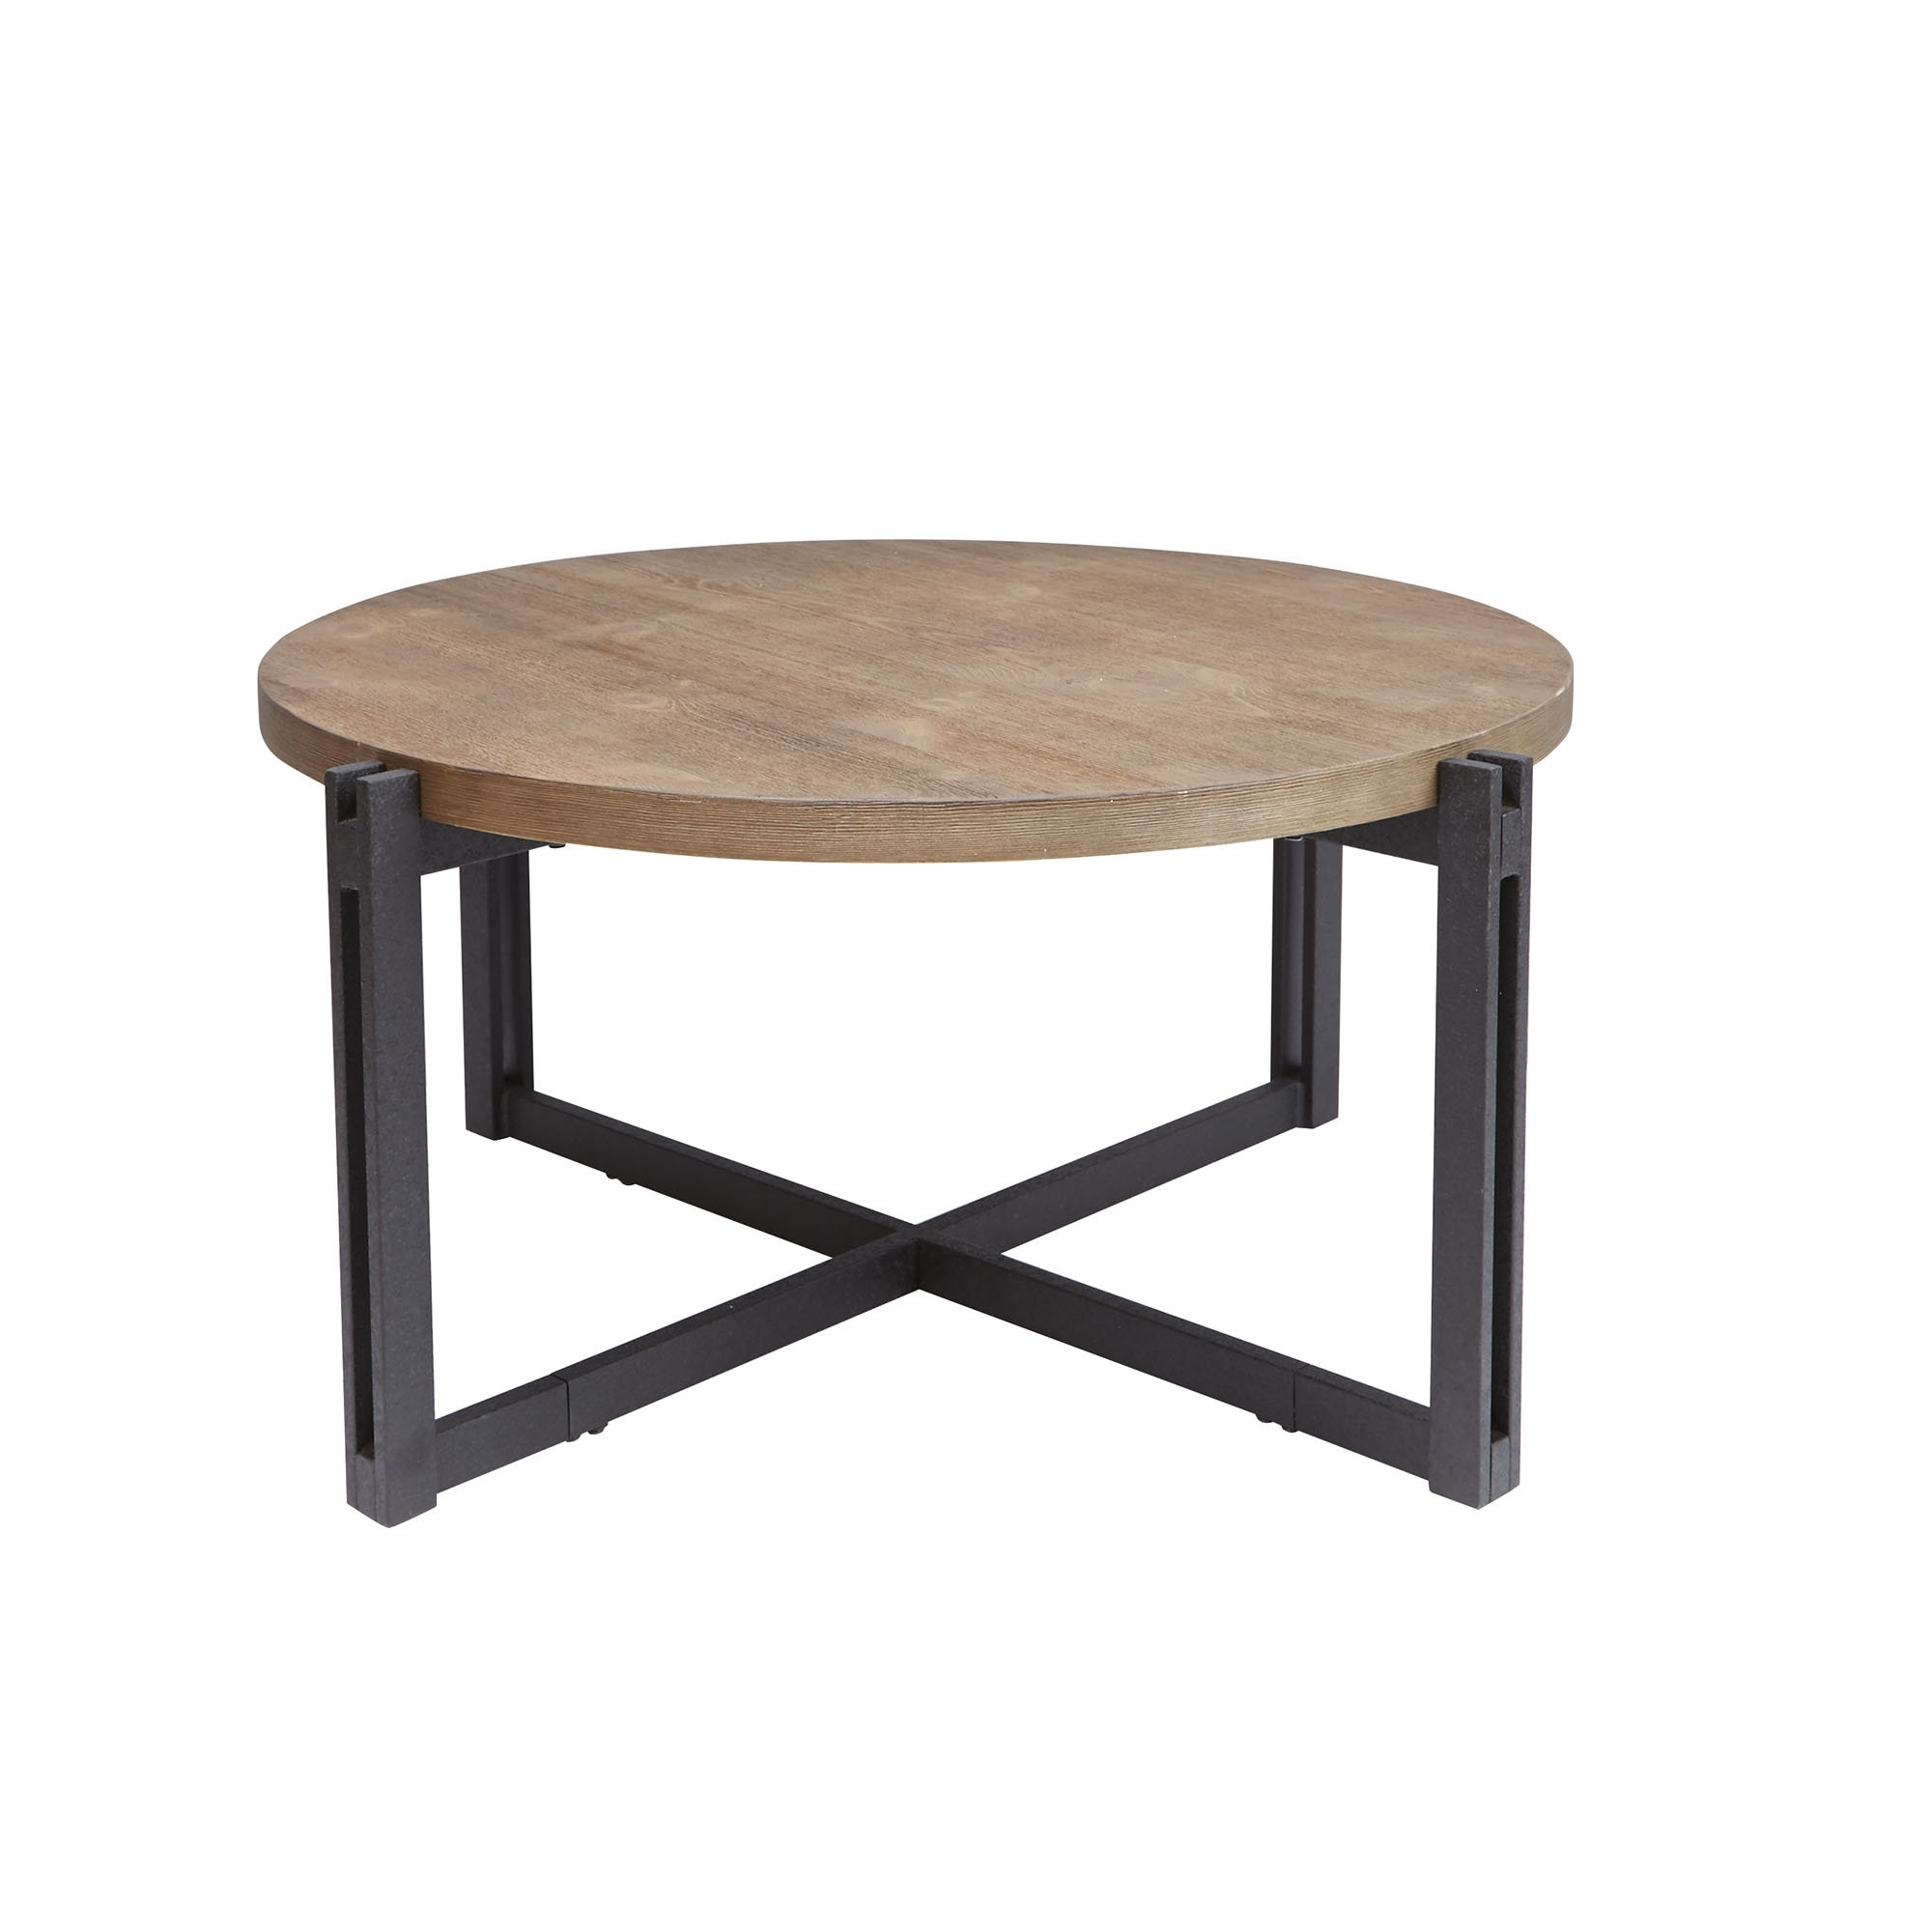 Best And Newest Grant Lift Top Cocktail Tables With Casters With Ivy Bronx Baran Coffee Table & Reviews (View 5 of 20)